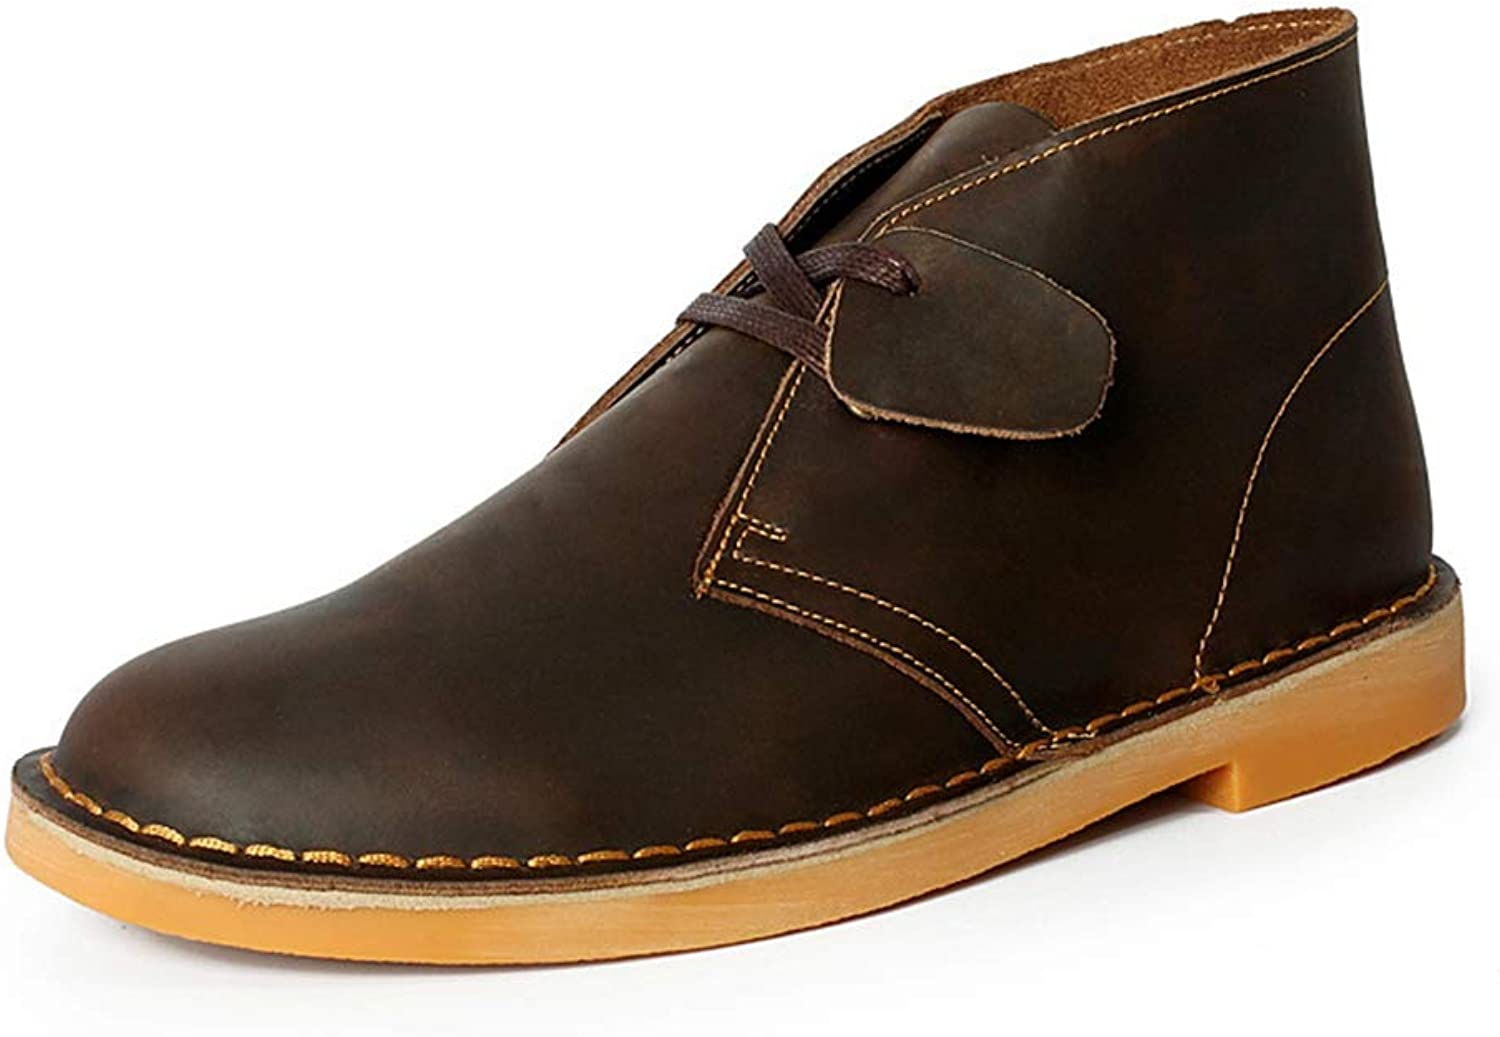 Phil Betty Mens Boots Round Toe Lace Up Breathable Casual Martin Boots